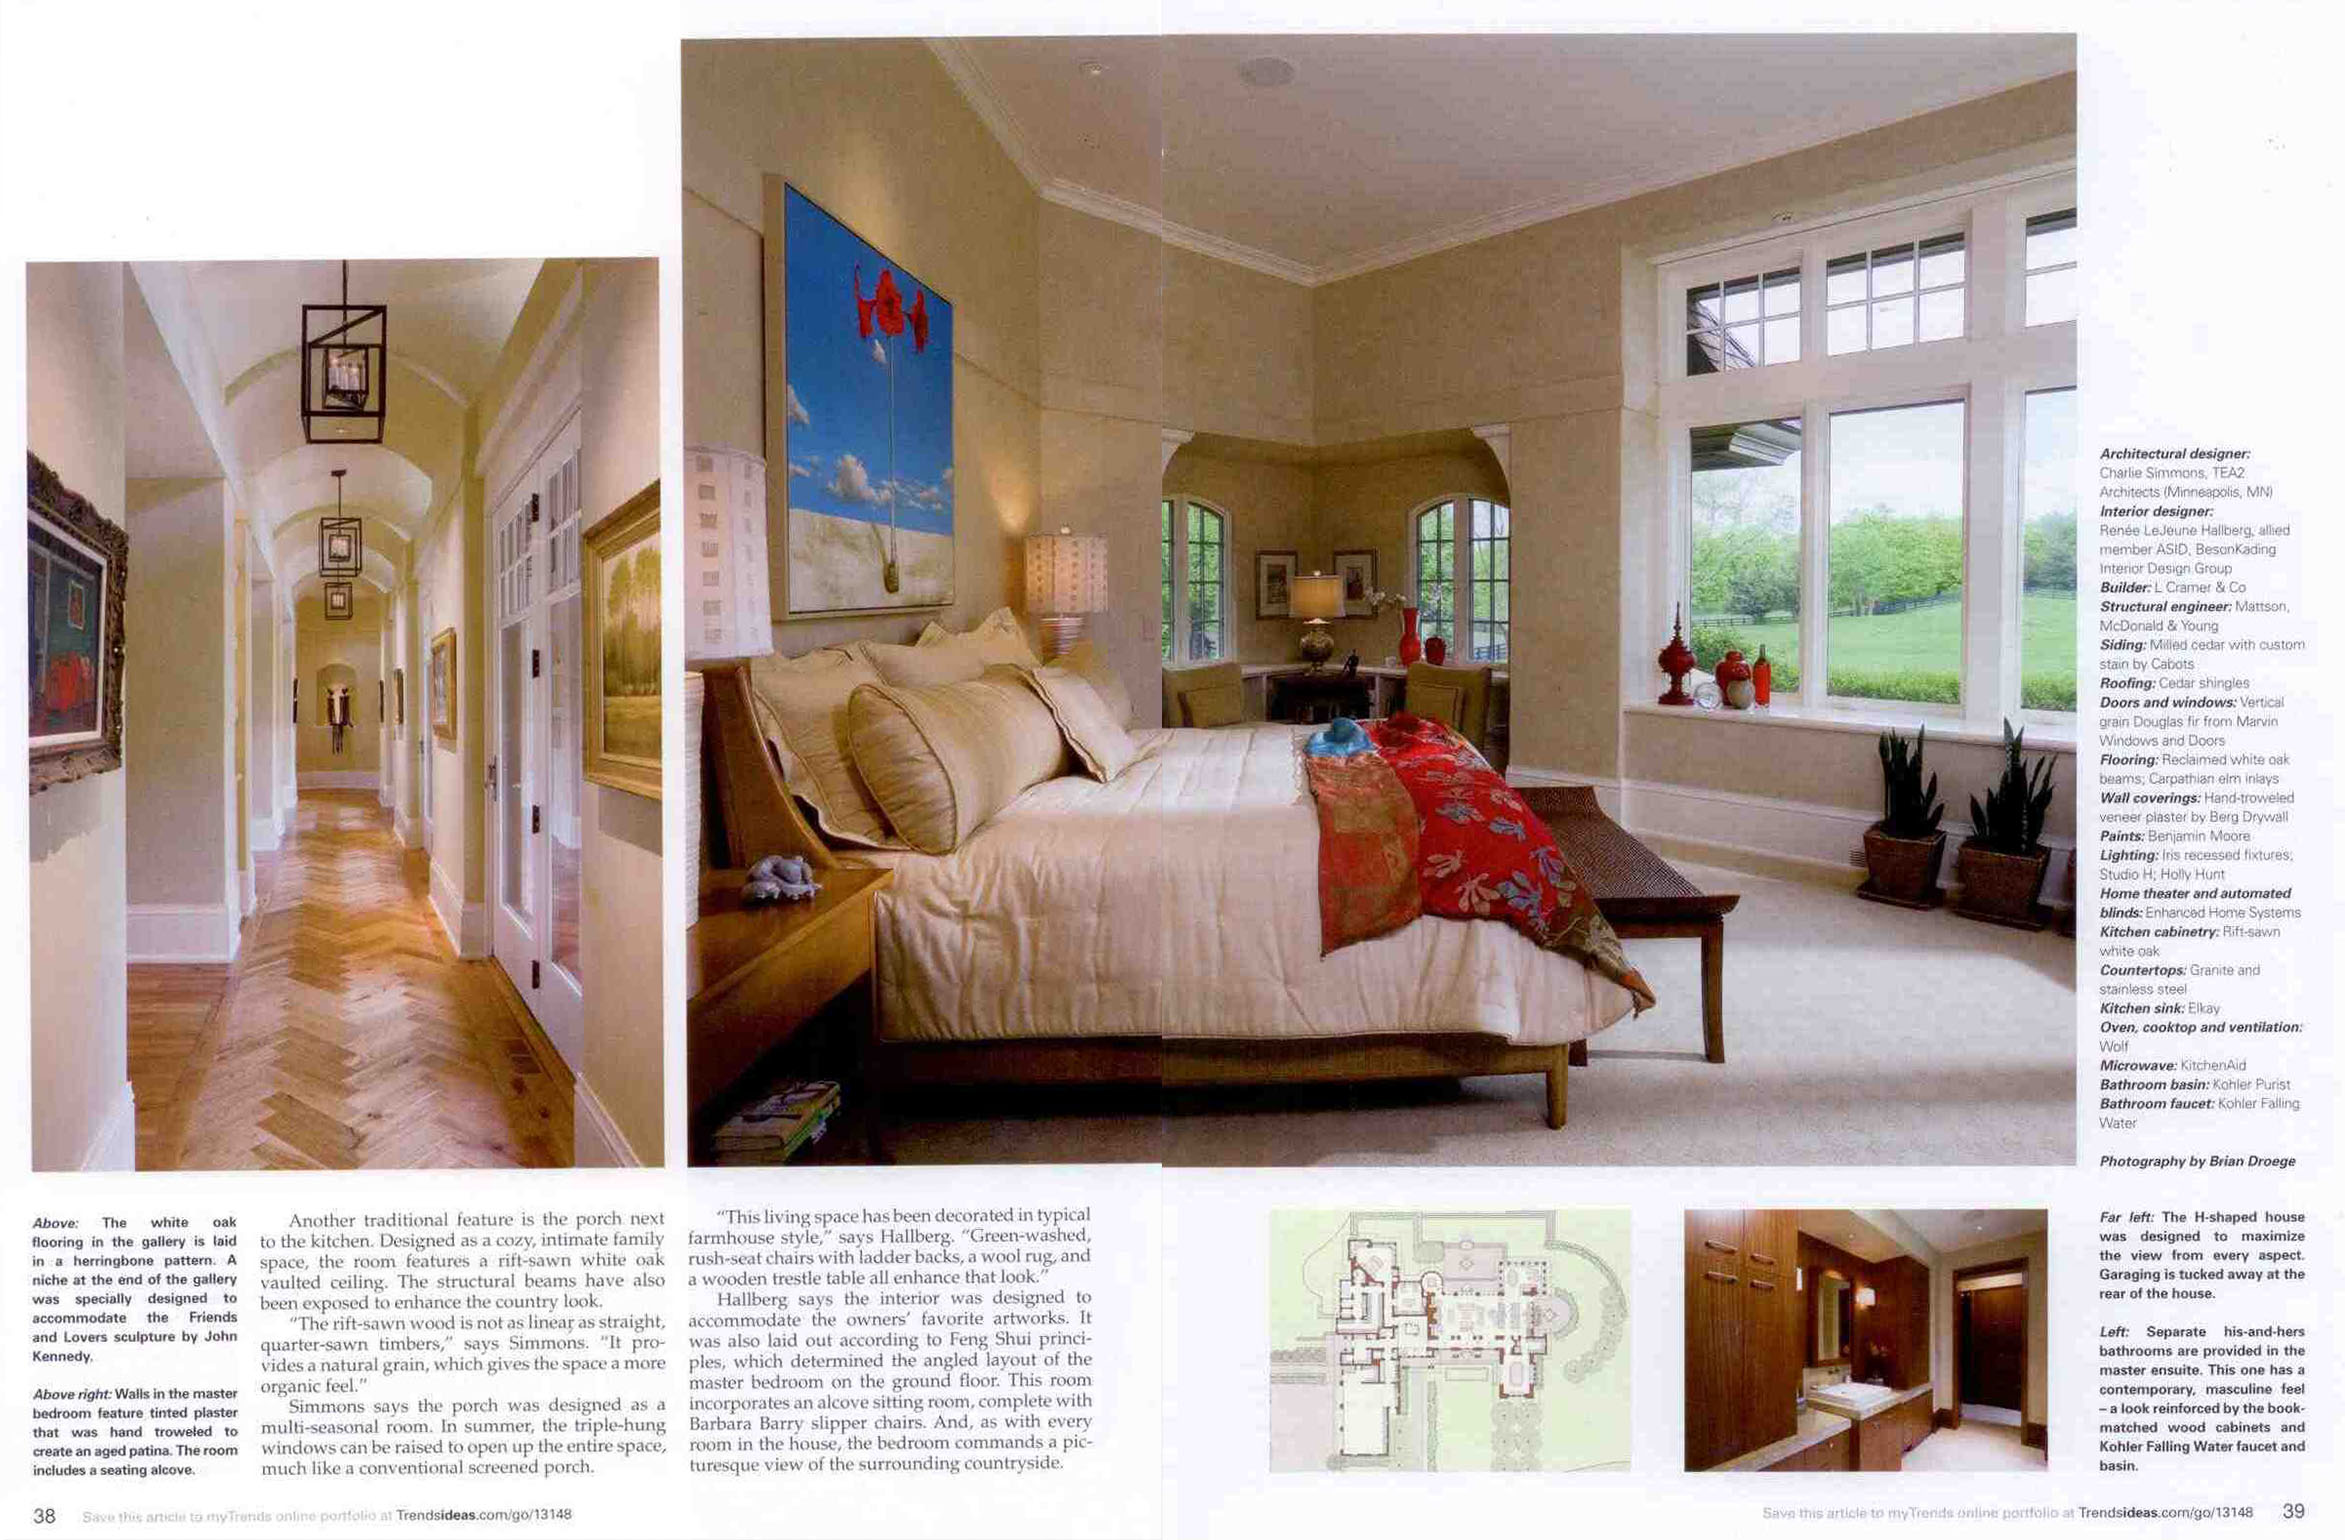 2013_Architectural Trends_Article5.jpg